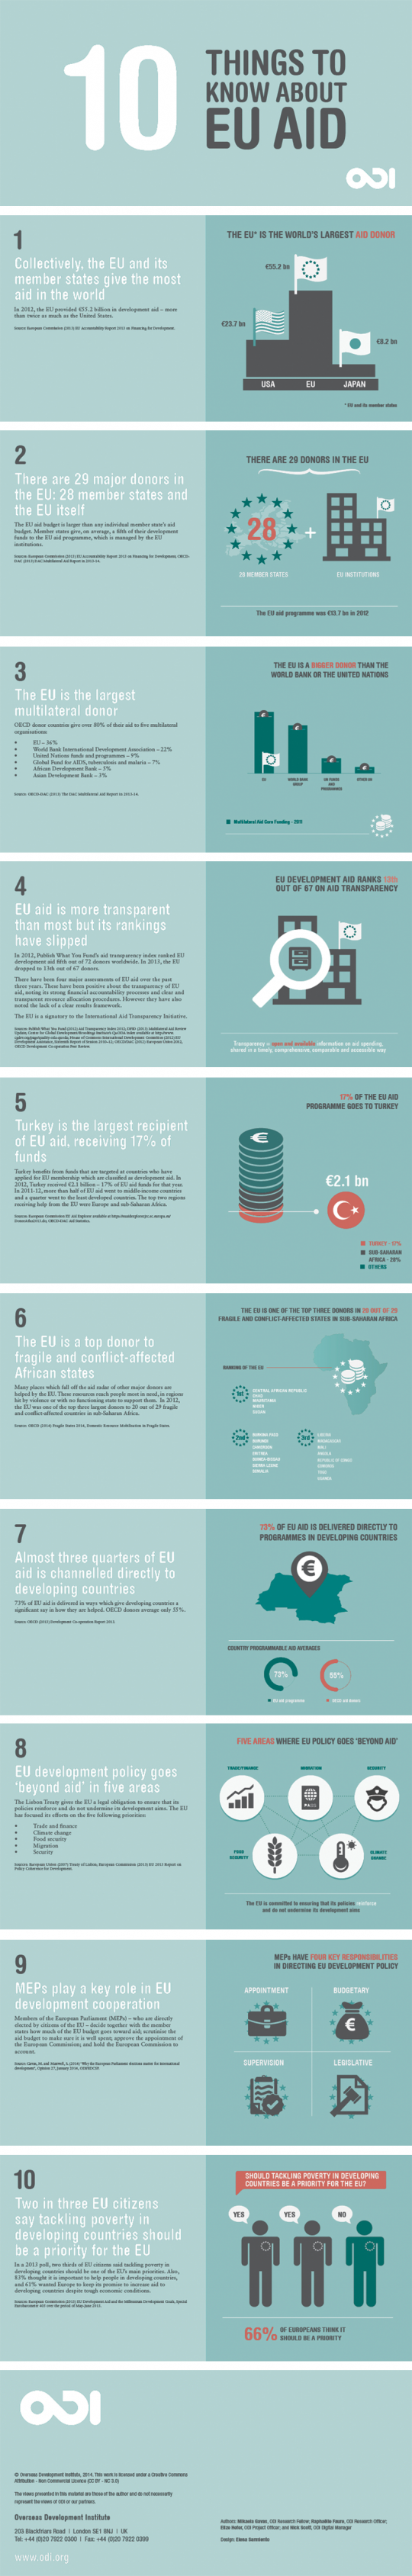 10 things to know about EU aid